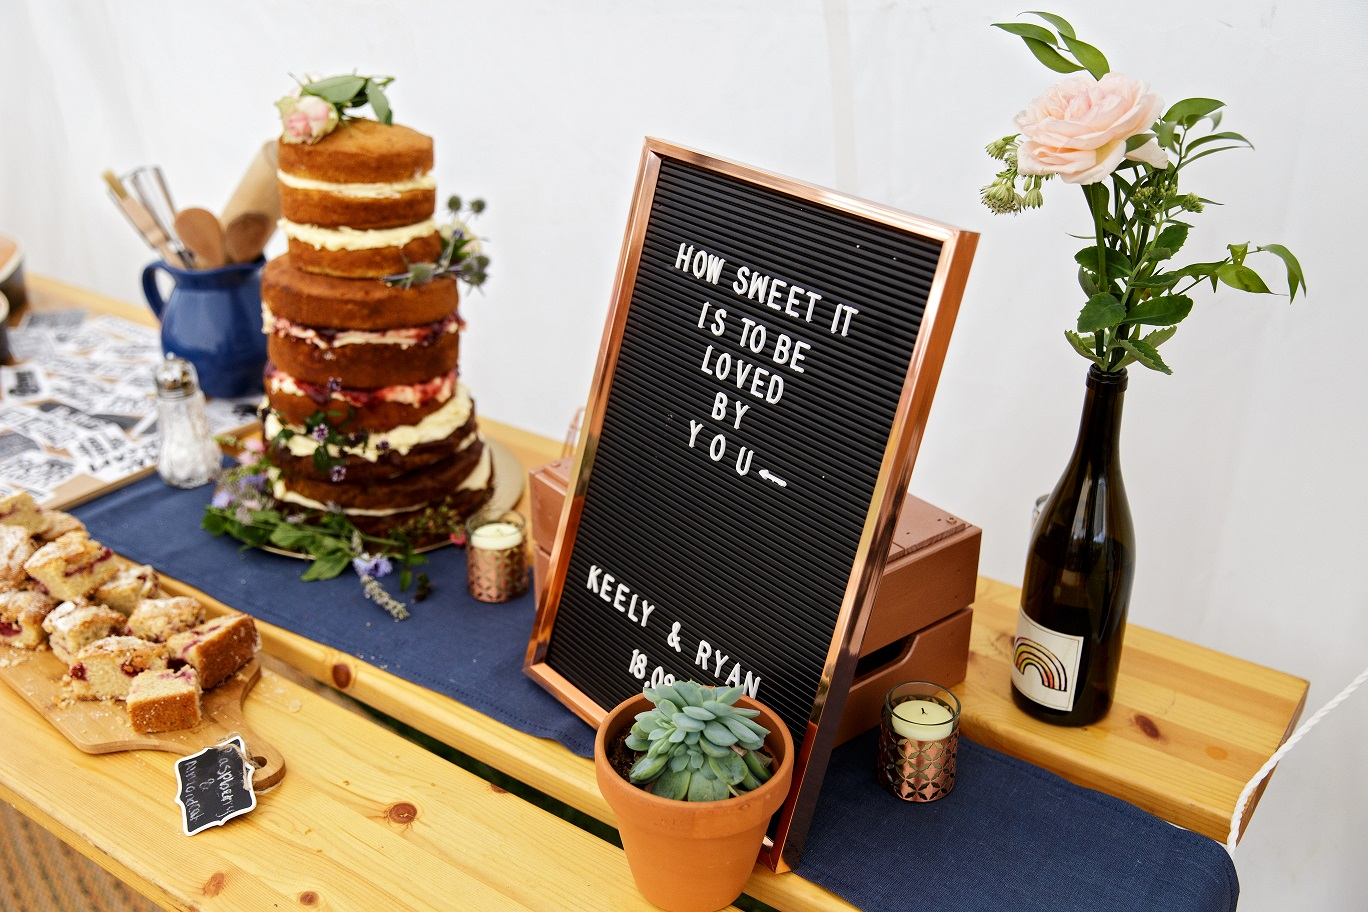 Homemade wedding dessert table inspiration